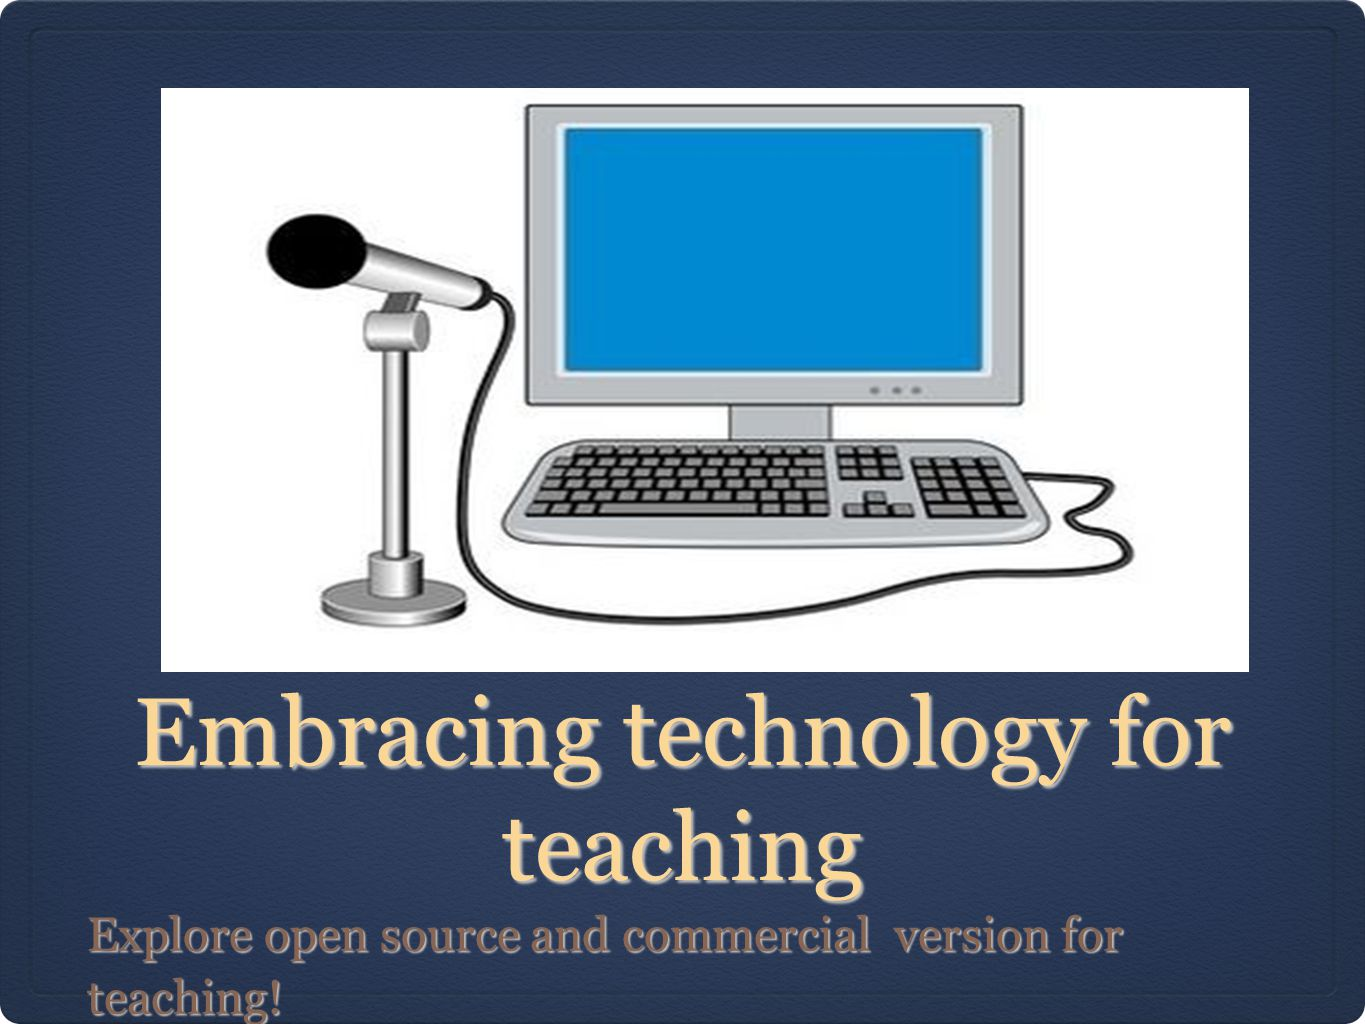 Embracing technology for teaching Explore open source and commercial version for teaching!